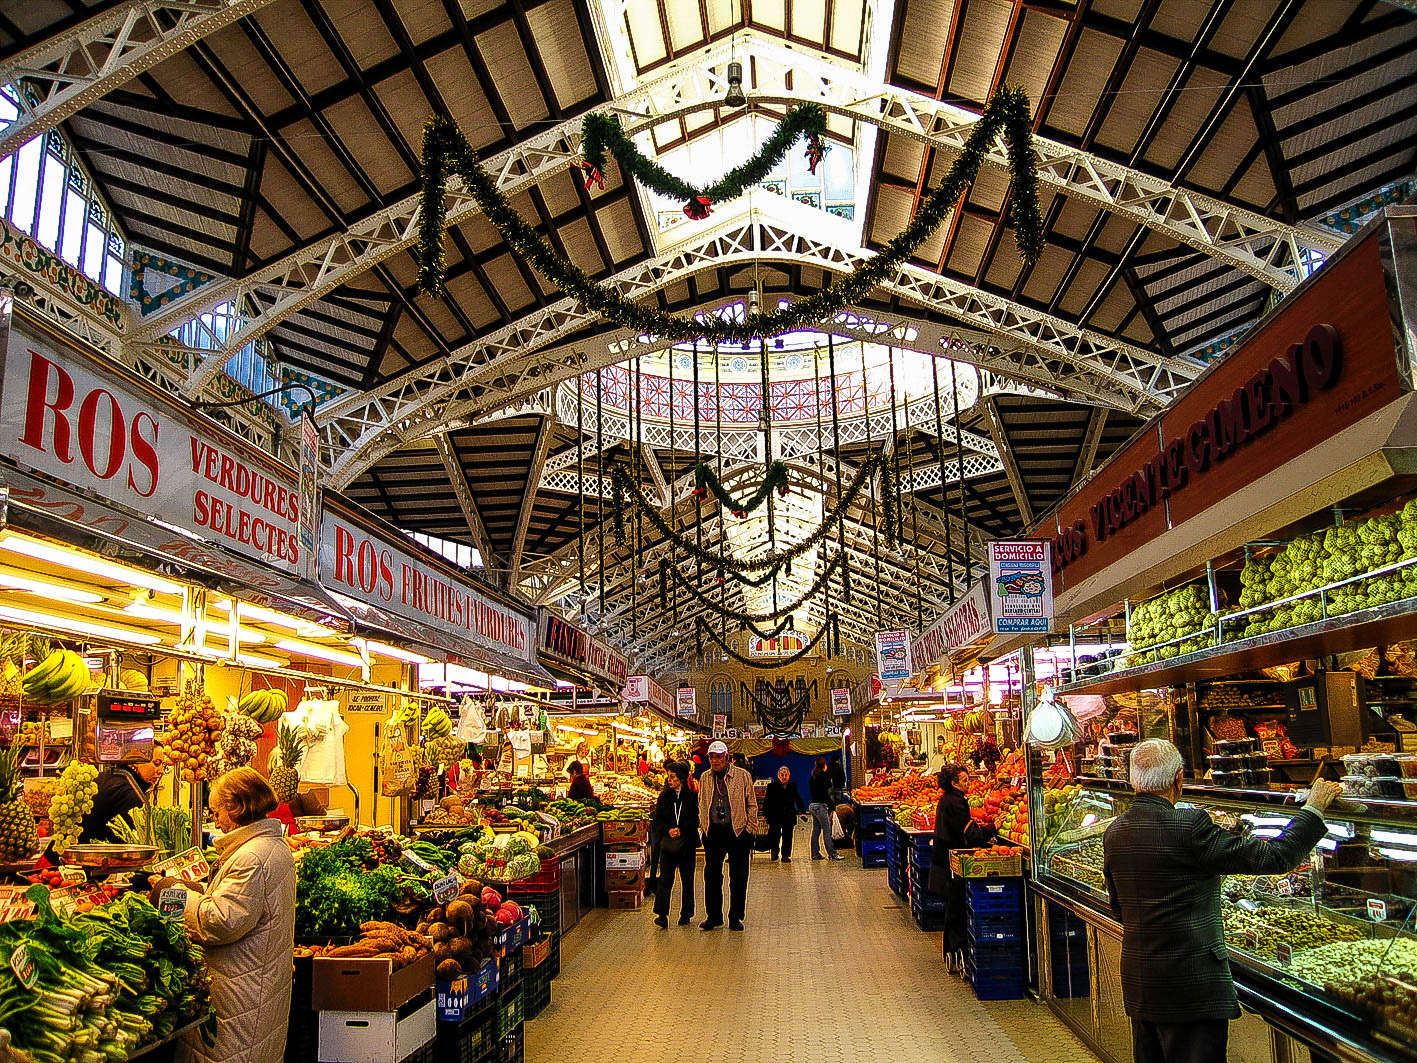 Mercado Central,places to shop in Spain